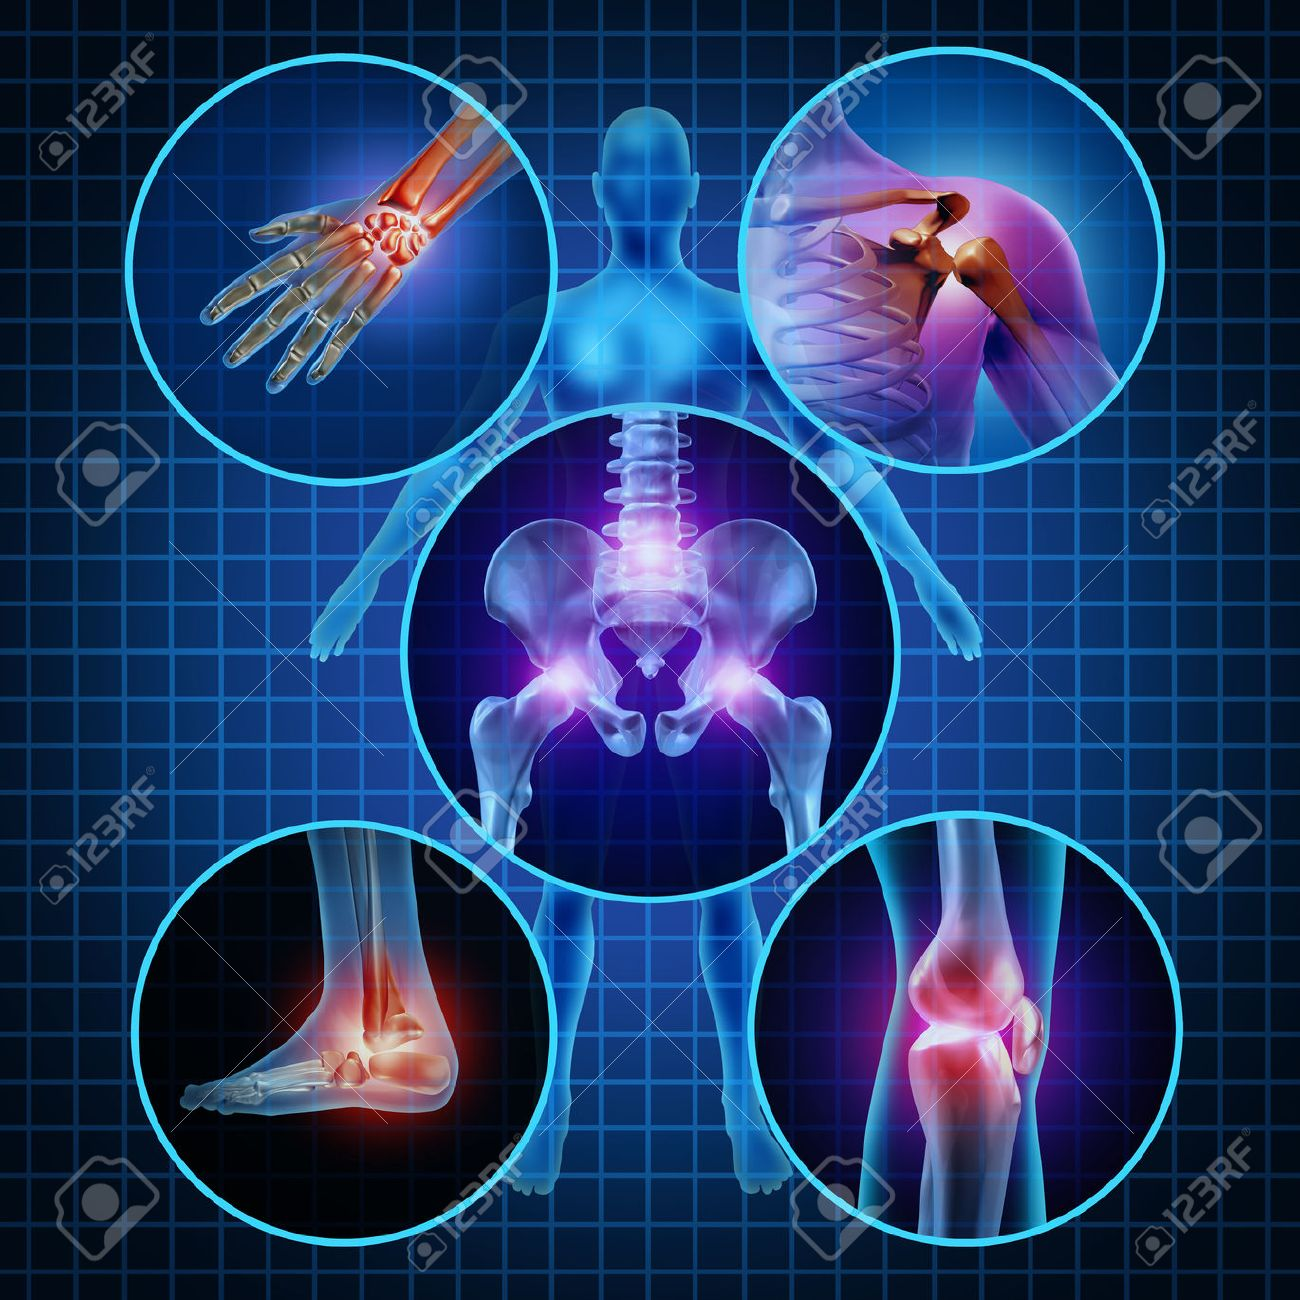 Painful joints human anatomy concept with the body as a group of circular panels of sore areas as a pain and injury or arthritis illness symbol for health care and medical symptoms due to aging or sports and work injury - 28028298